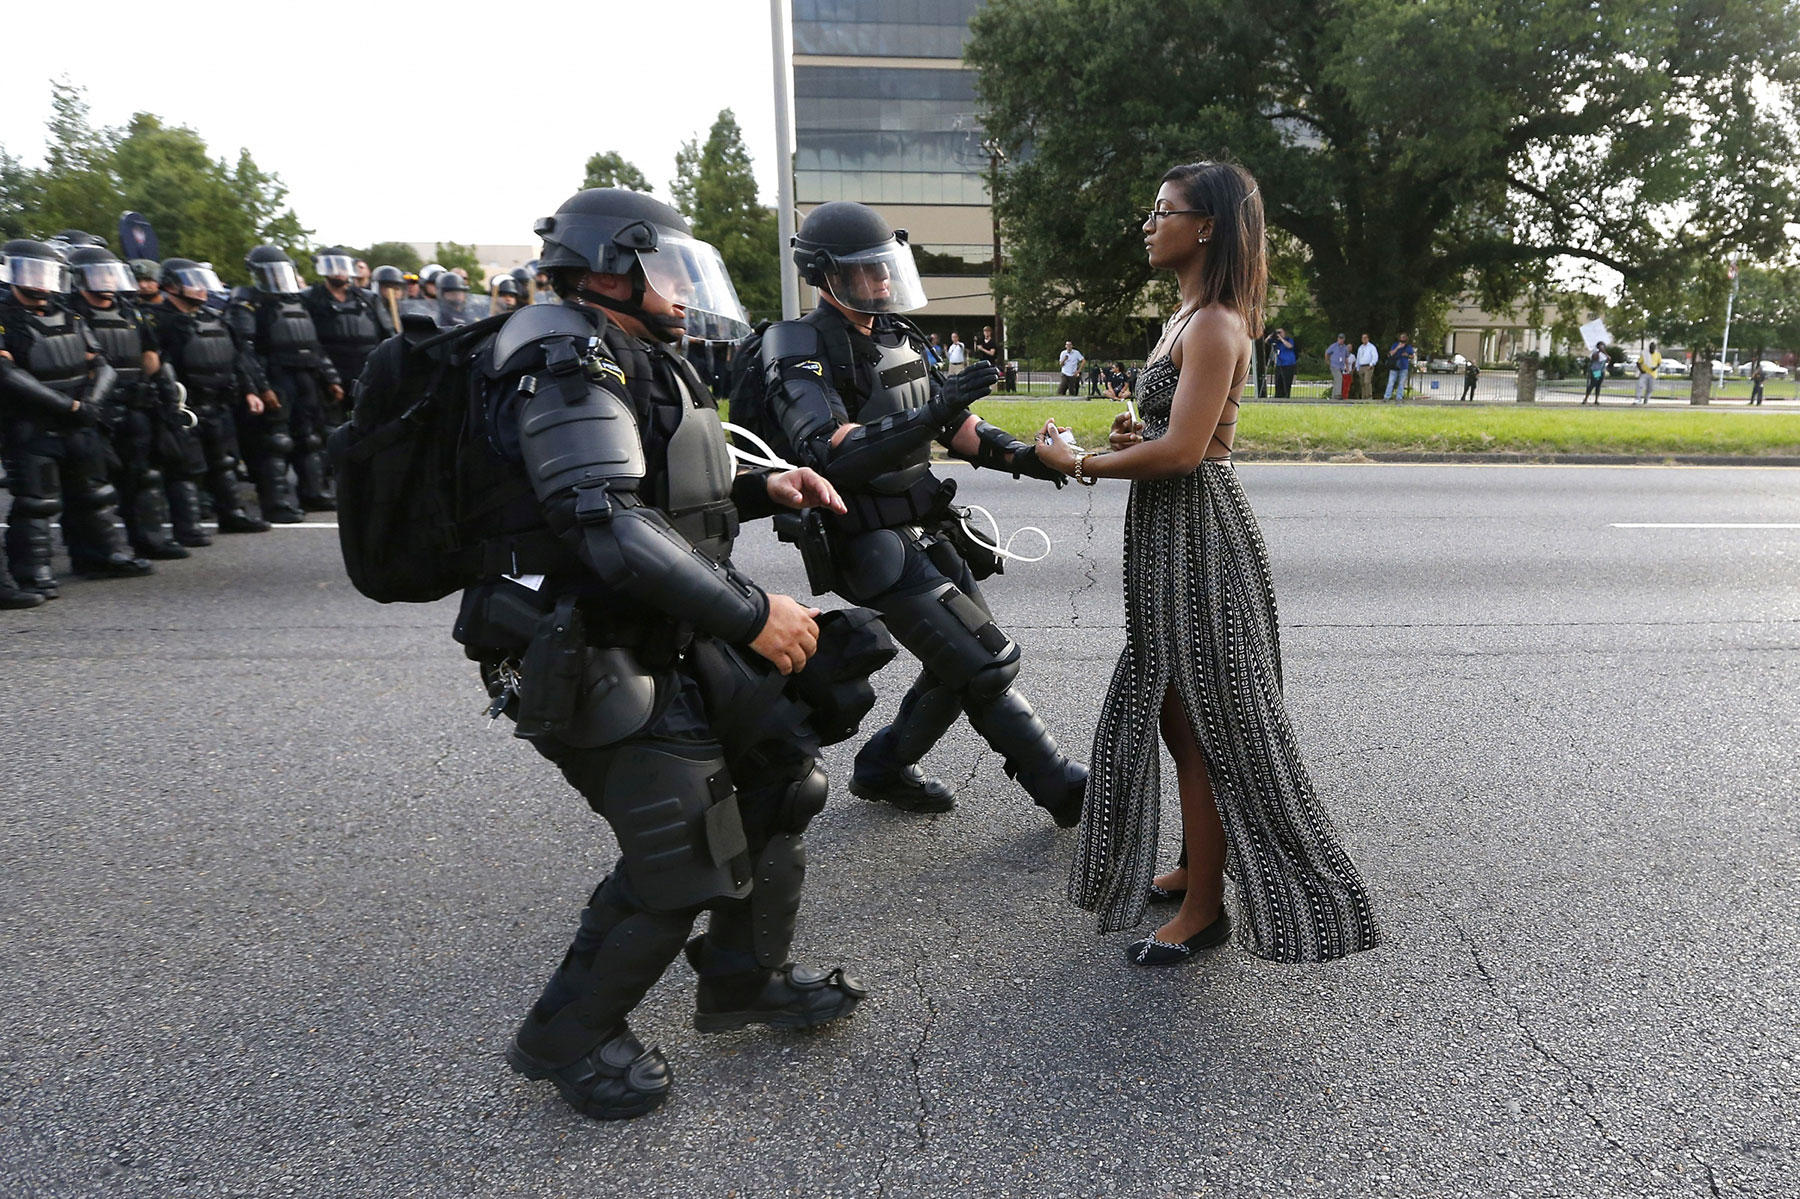 the medias negative portrayal of the use of force by police officers in the united states The copyright law of the united states (title 17, united states code) governs the making of  research examining the police use of force has reported that officer characteristics, including race, age, and gender, were not related to the use of force.